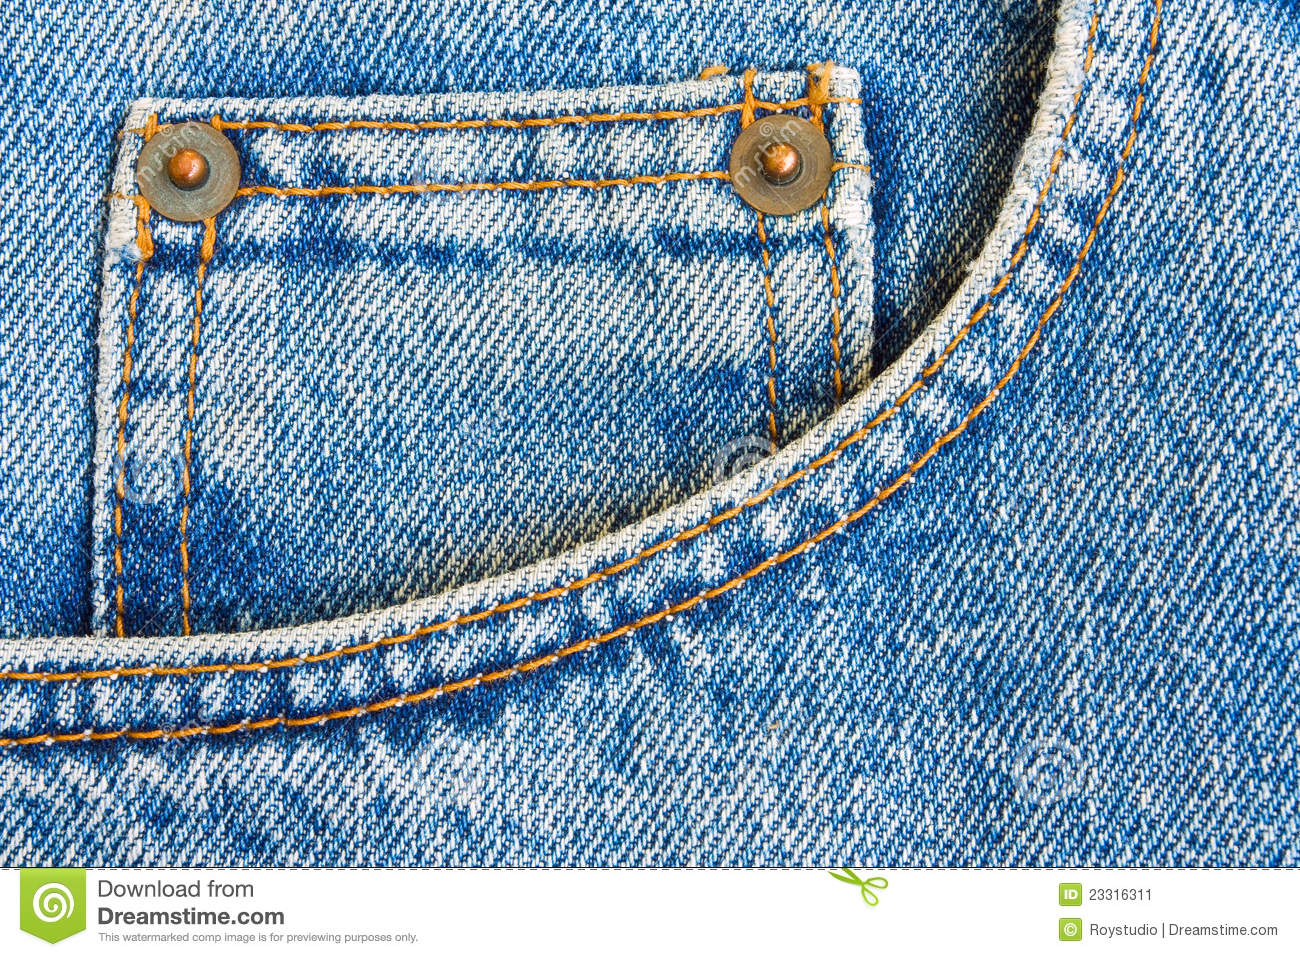 Blue Jeans Trousers Pocket As Background Stock Image - Image 23316311